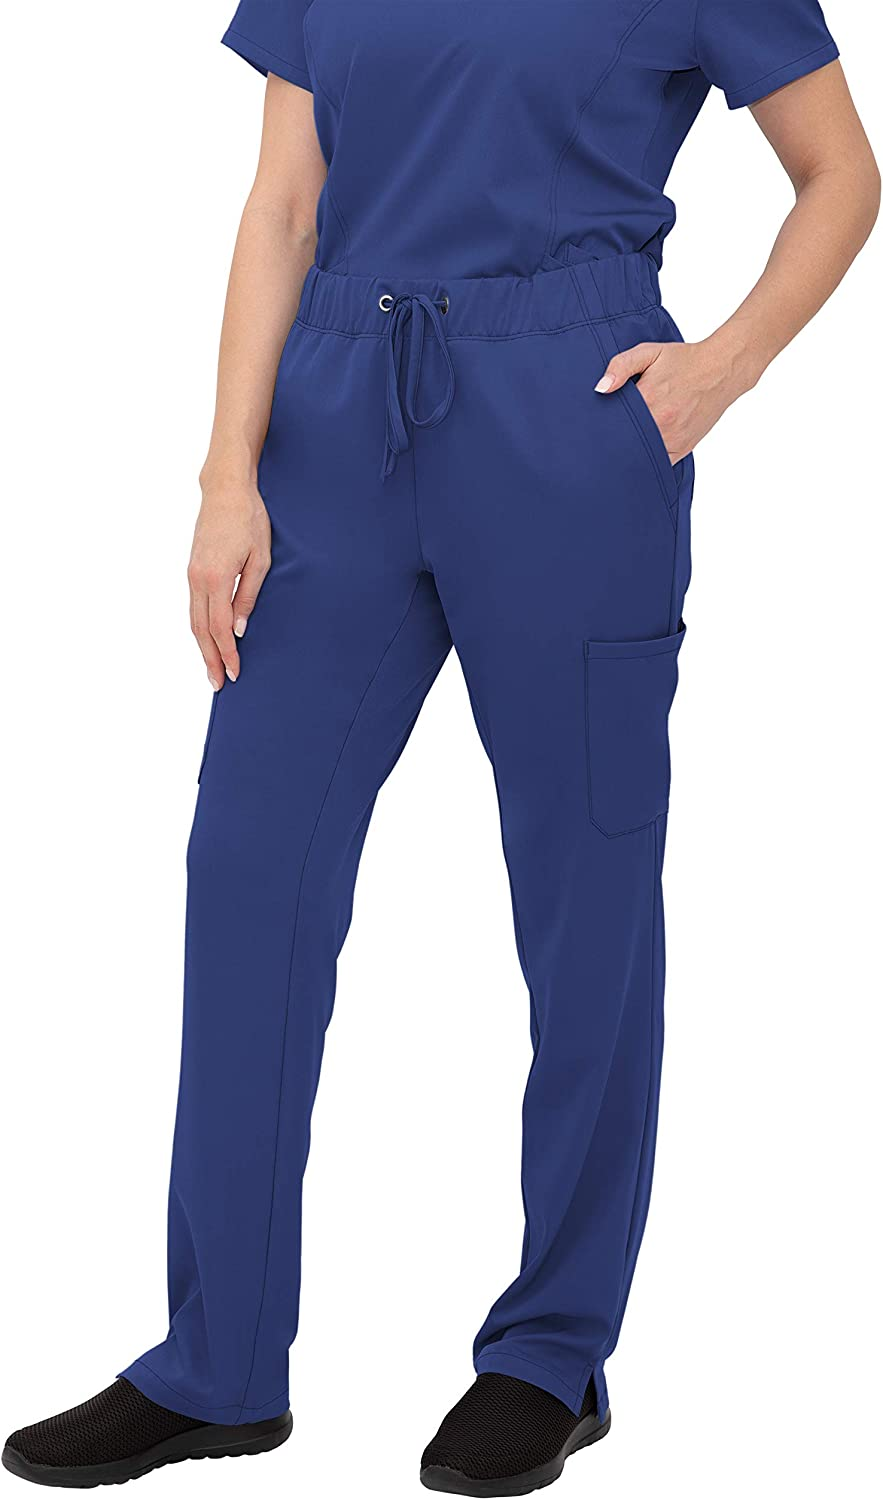 Sales for sale Factory outlet SOULFUL SCRUBS 6 Pocket Cargo - Stylish Scrub Pant Medical